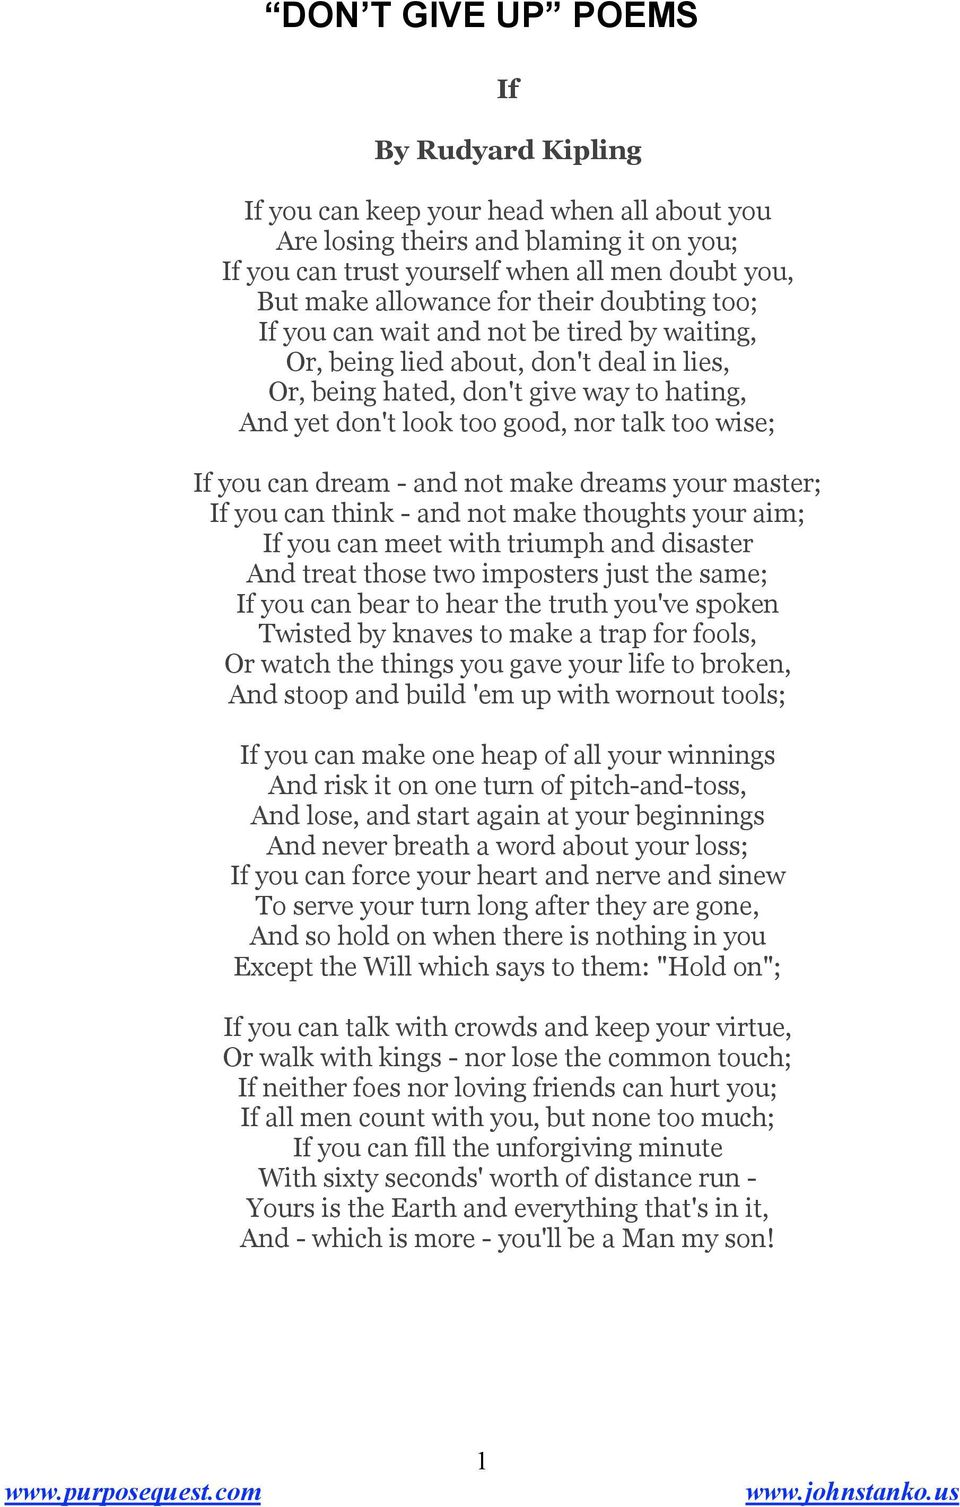 Commandment of Rudyard Kipling. Read and reread